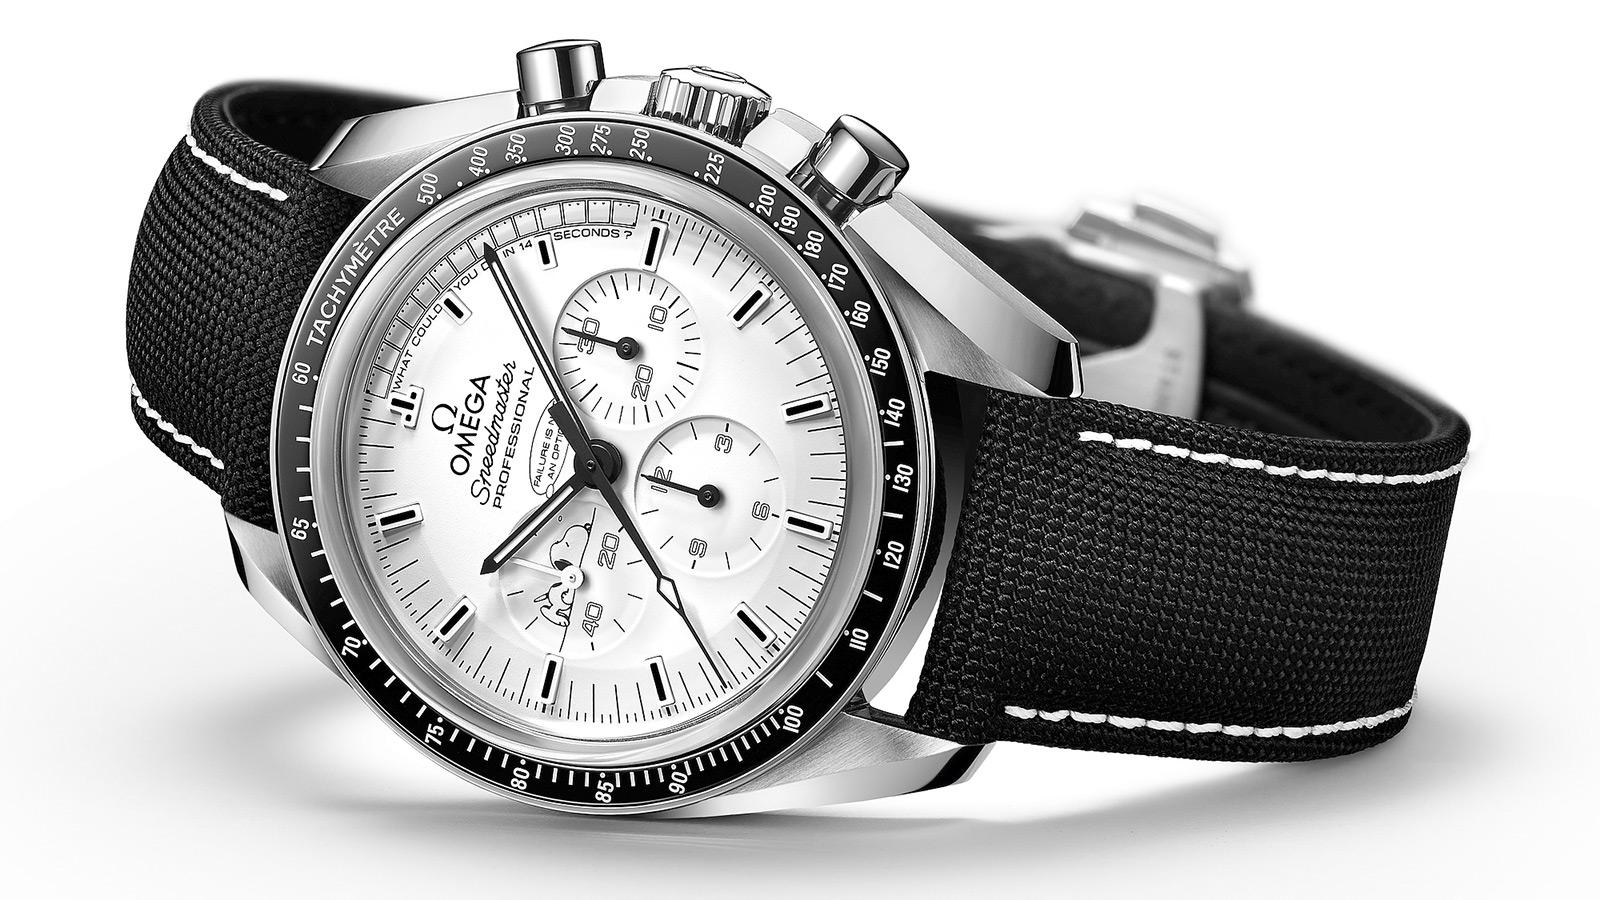 Omega's Speedmaster Apollo 13 Silver Snoopy Award